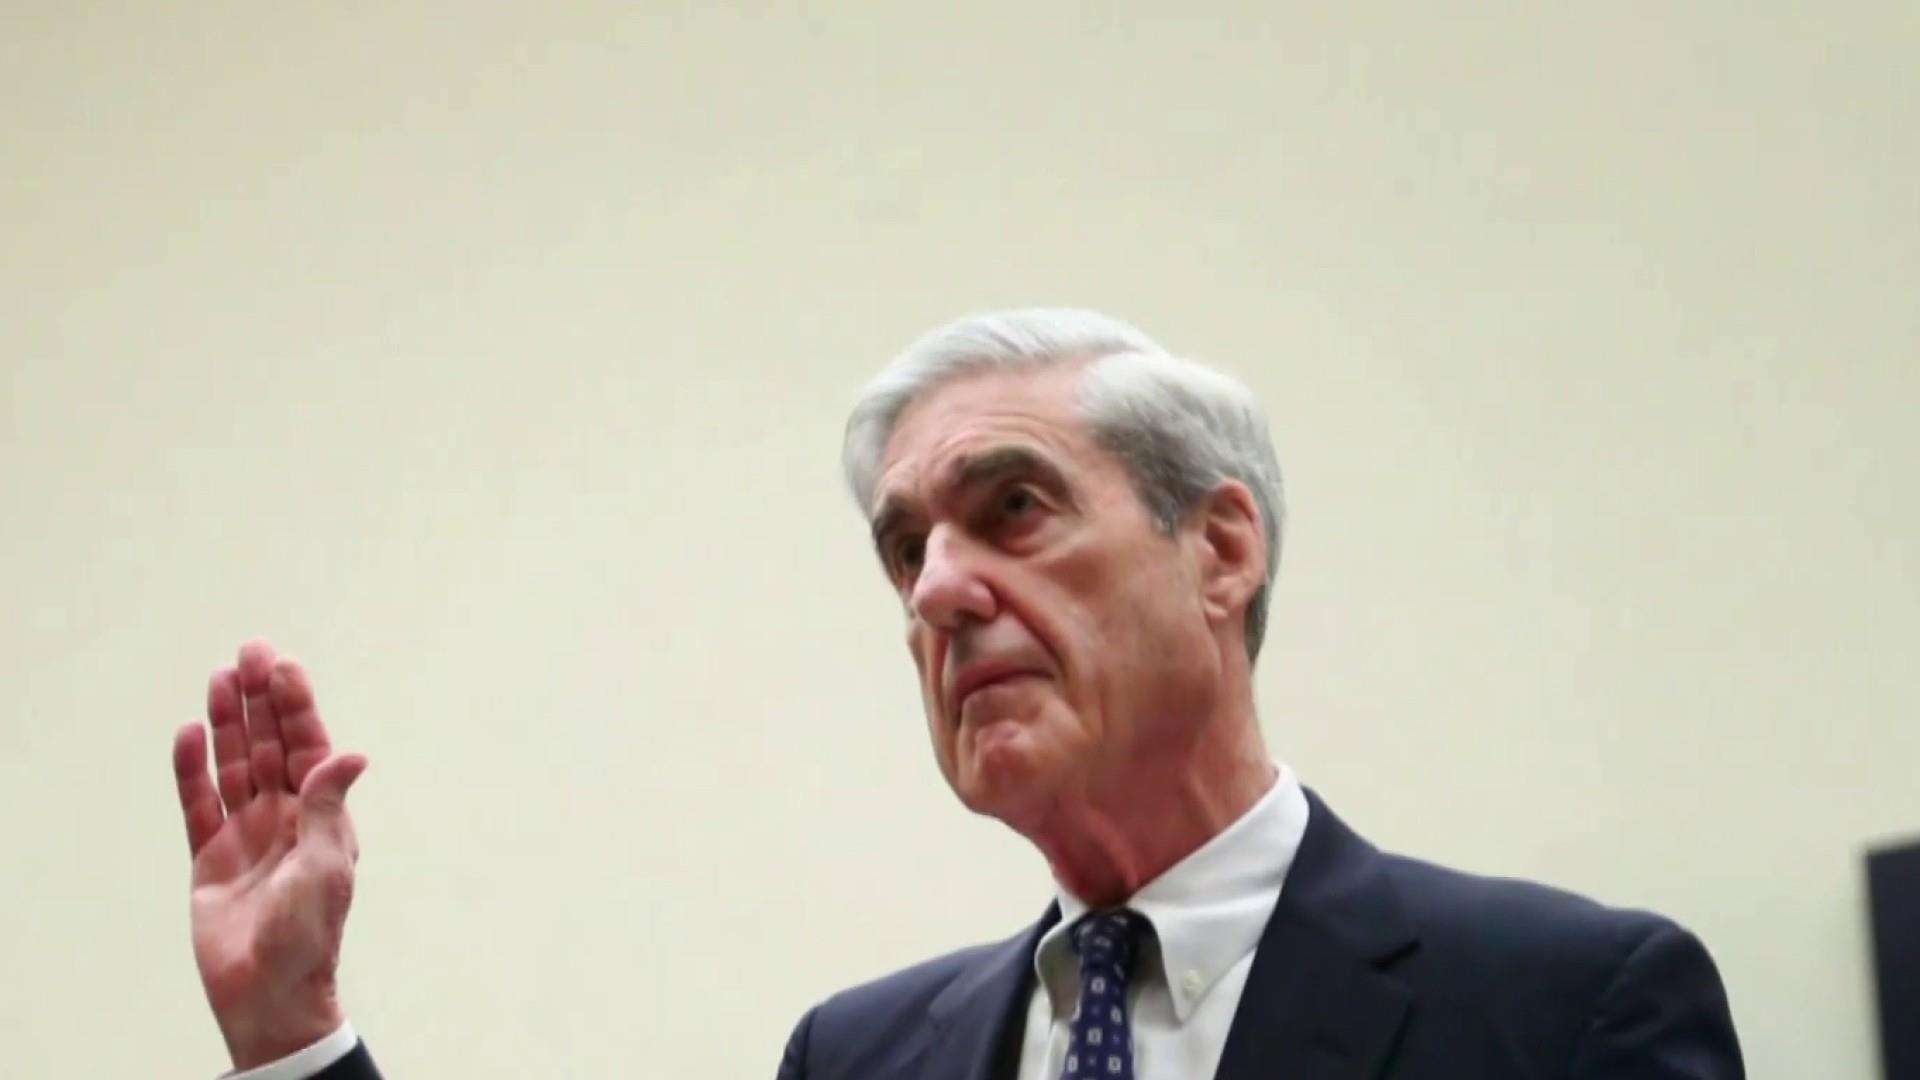 Here are the key moments from Mueller's testimony